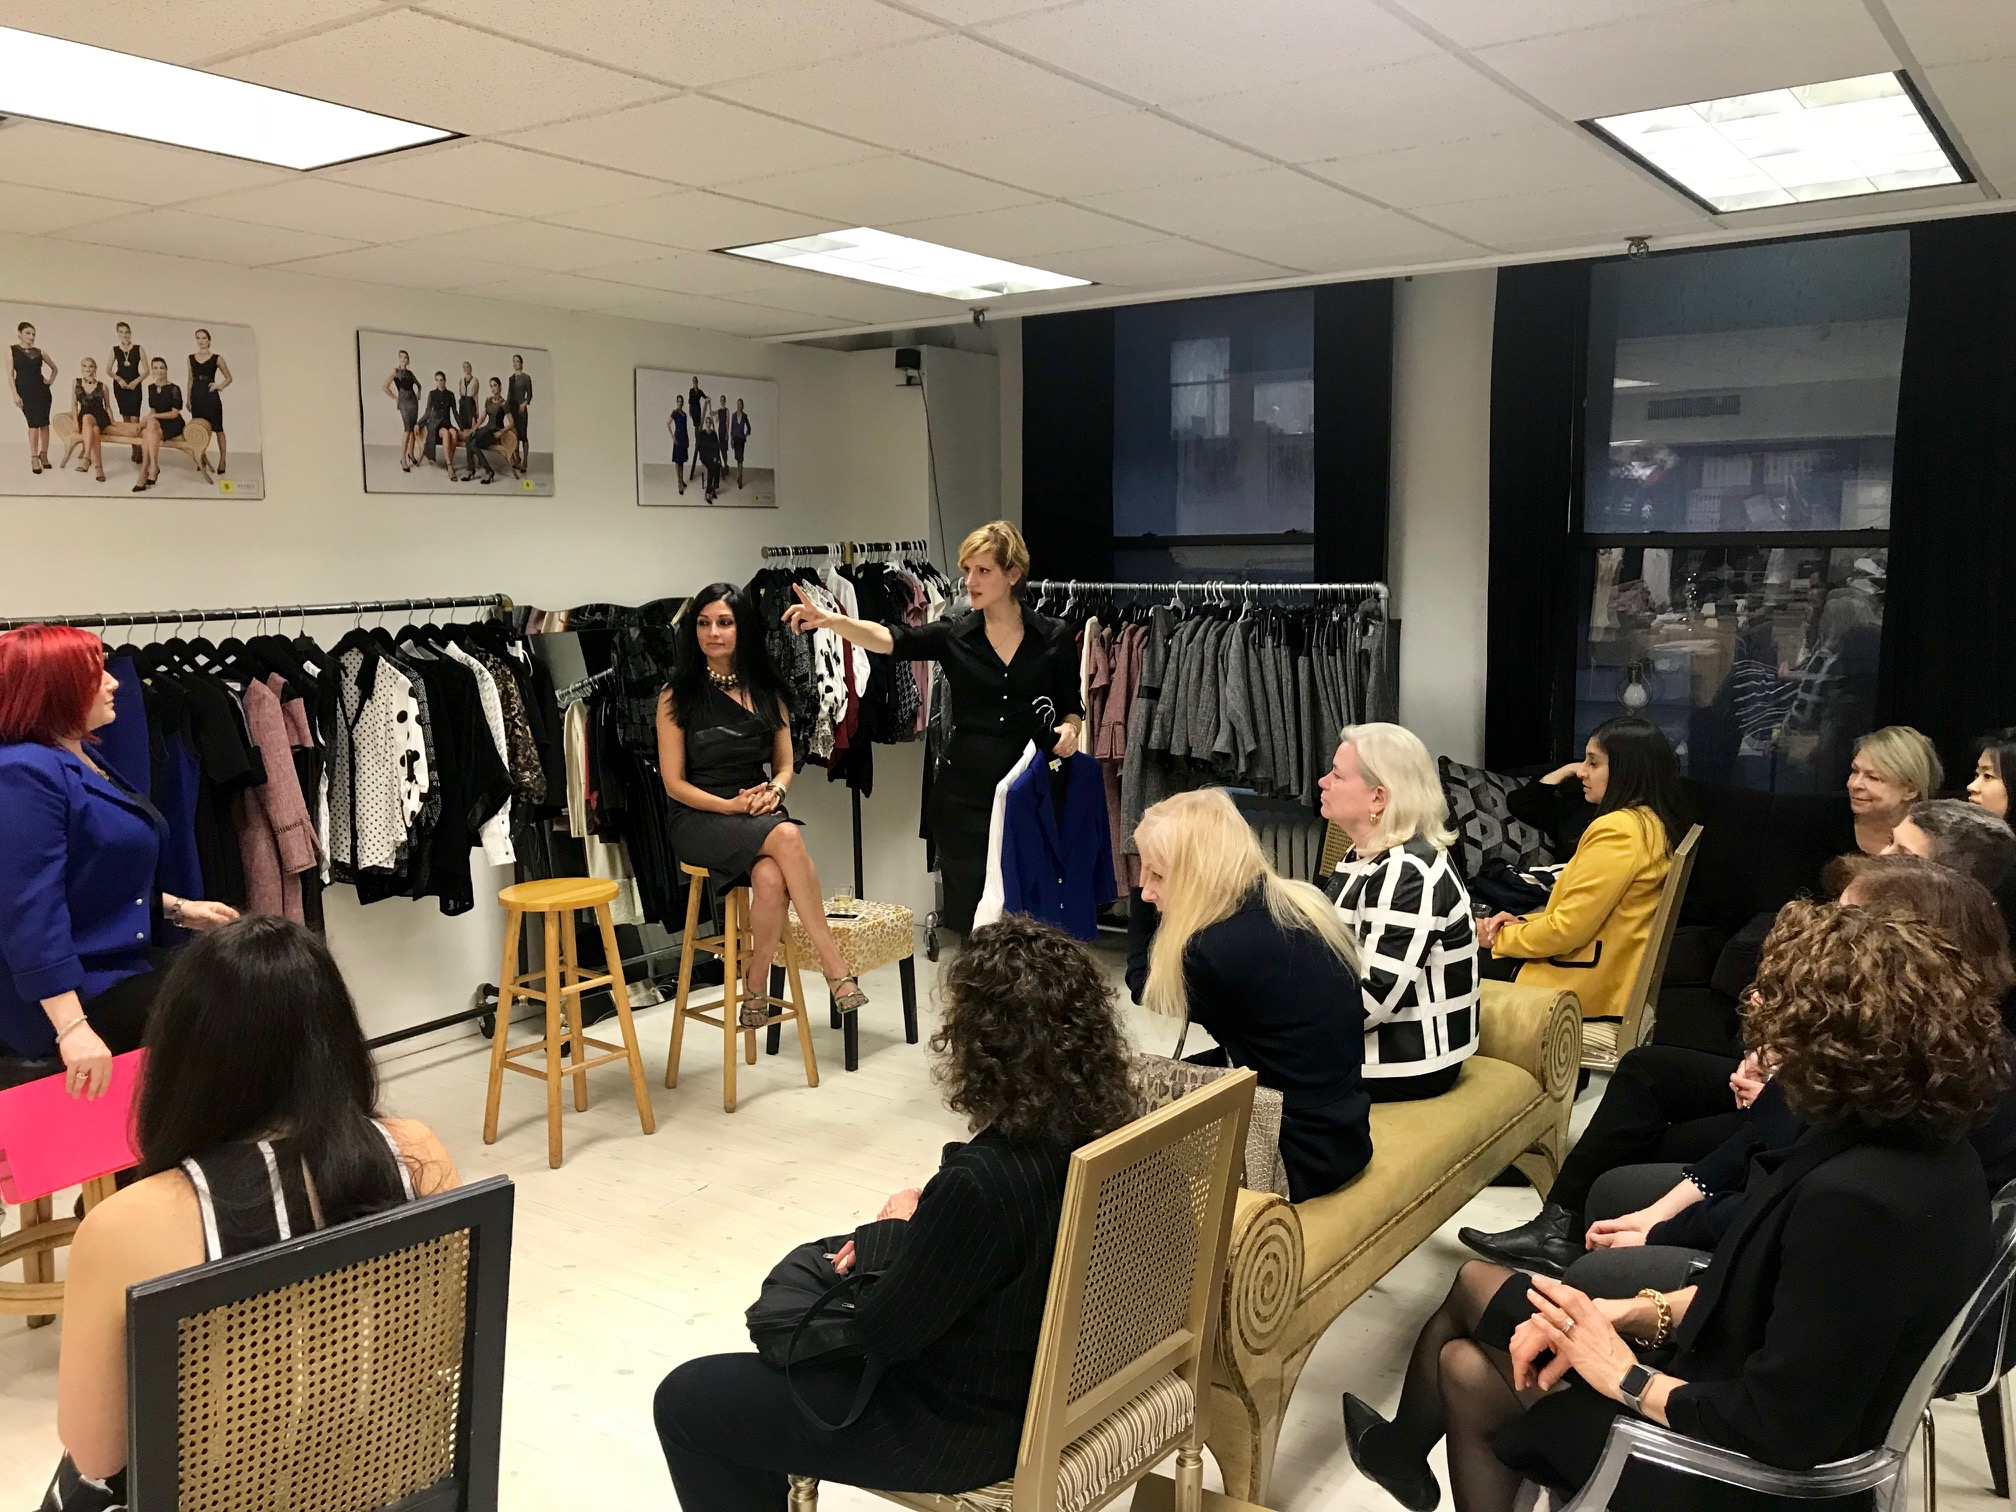 """""""Great presenter! Tania was great with giving my group of professional women tips on how to elevate their style. She even brought in actual items to show how mixing wardrobe staples with fun accessories can make a difference. Highly interactive presentation.""""   ~ Saran Johnson, Human Resources Director at Marcum LLP"""